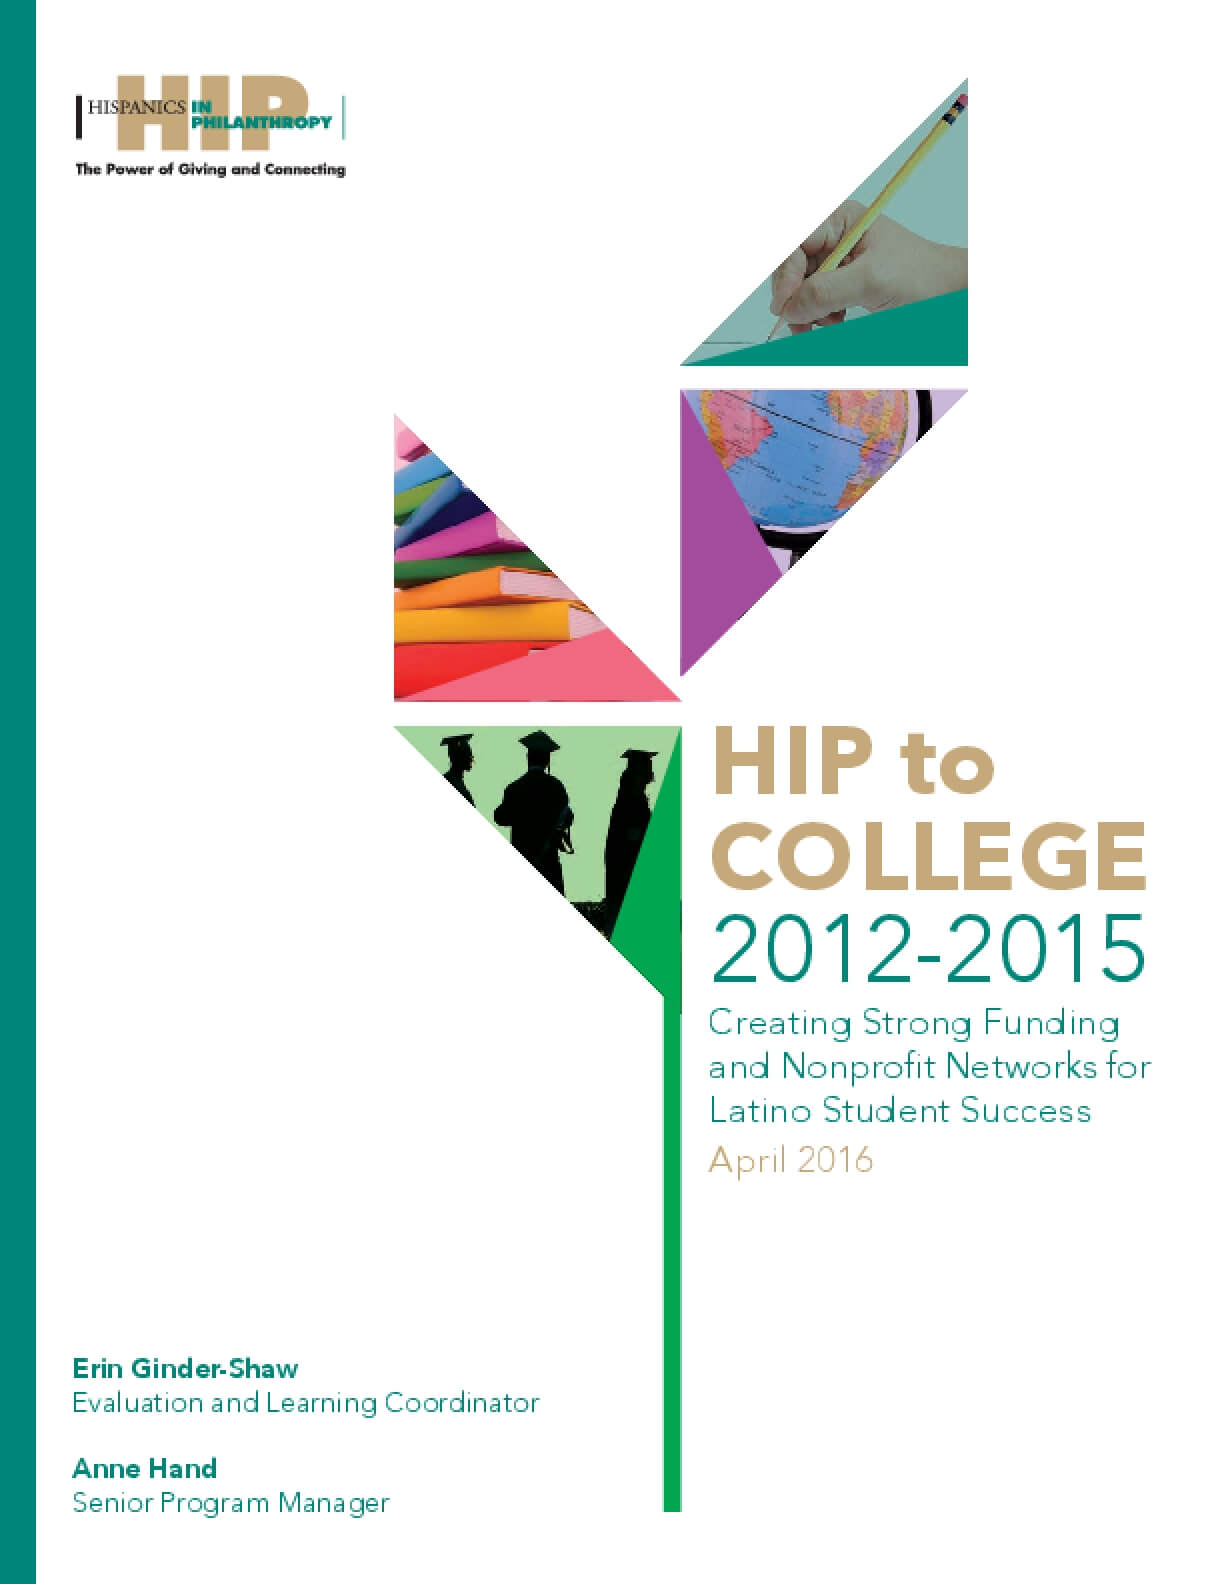 HIP to COLLEGE 2012-2015: Creating Strong Funding and Nonprofit Networks for Latino Student Success